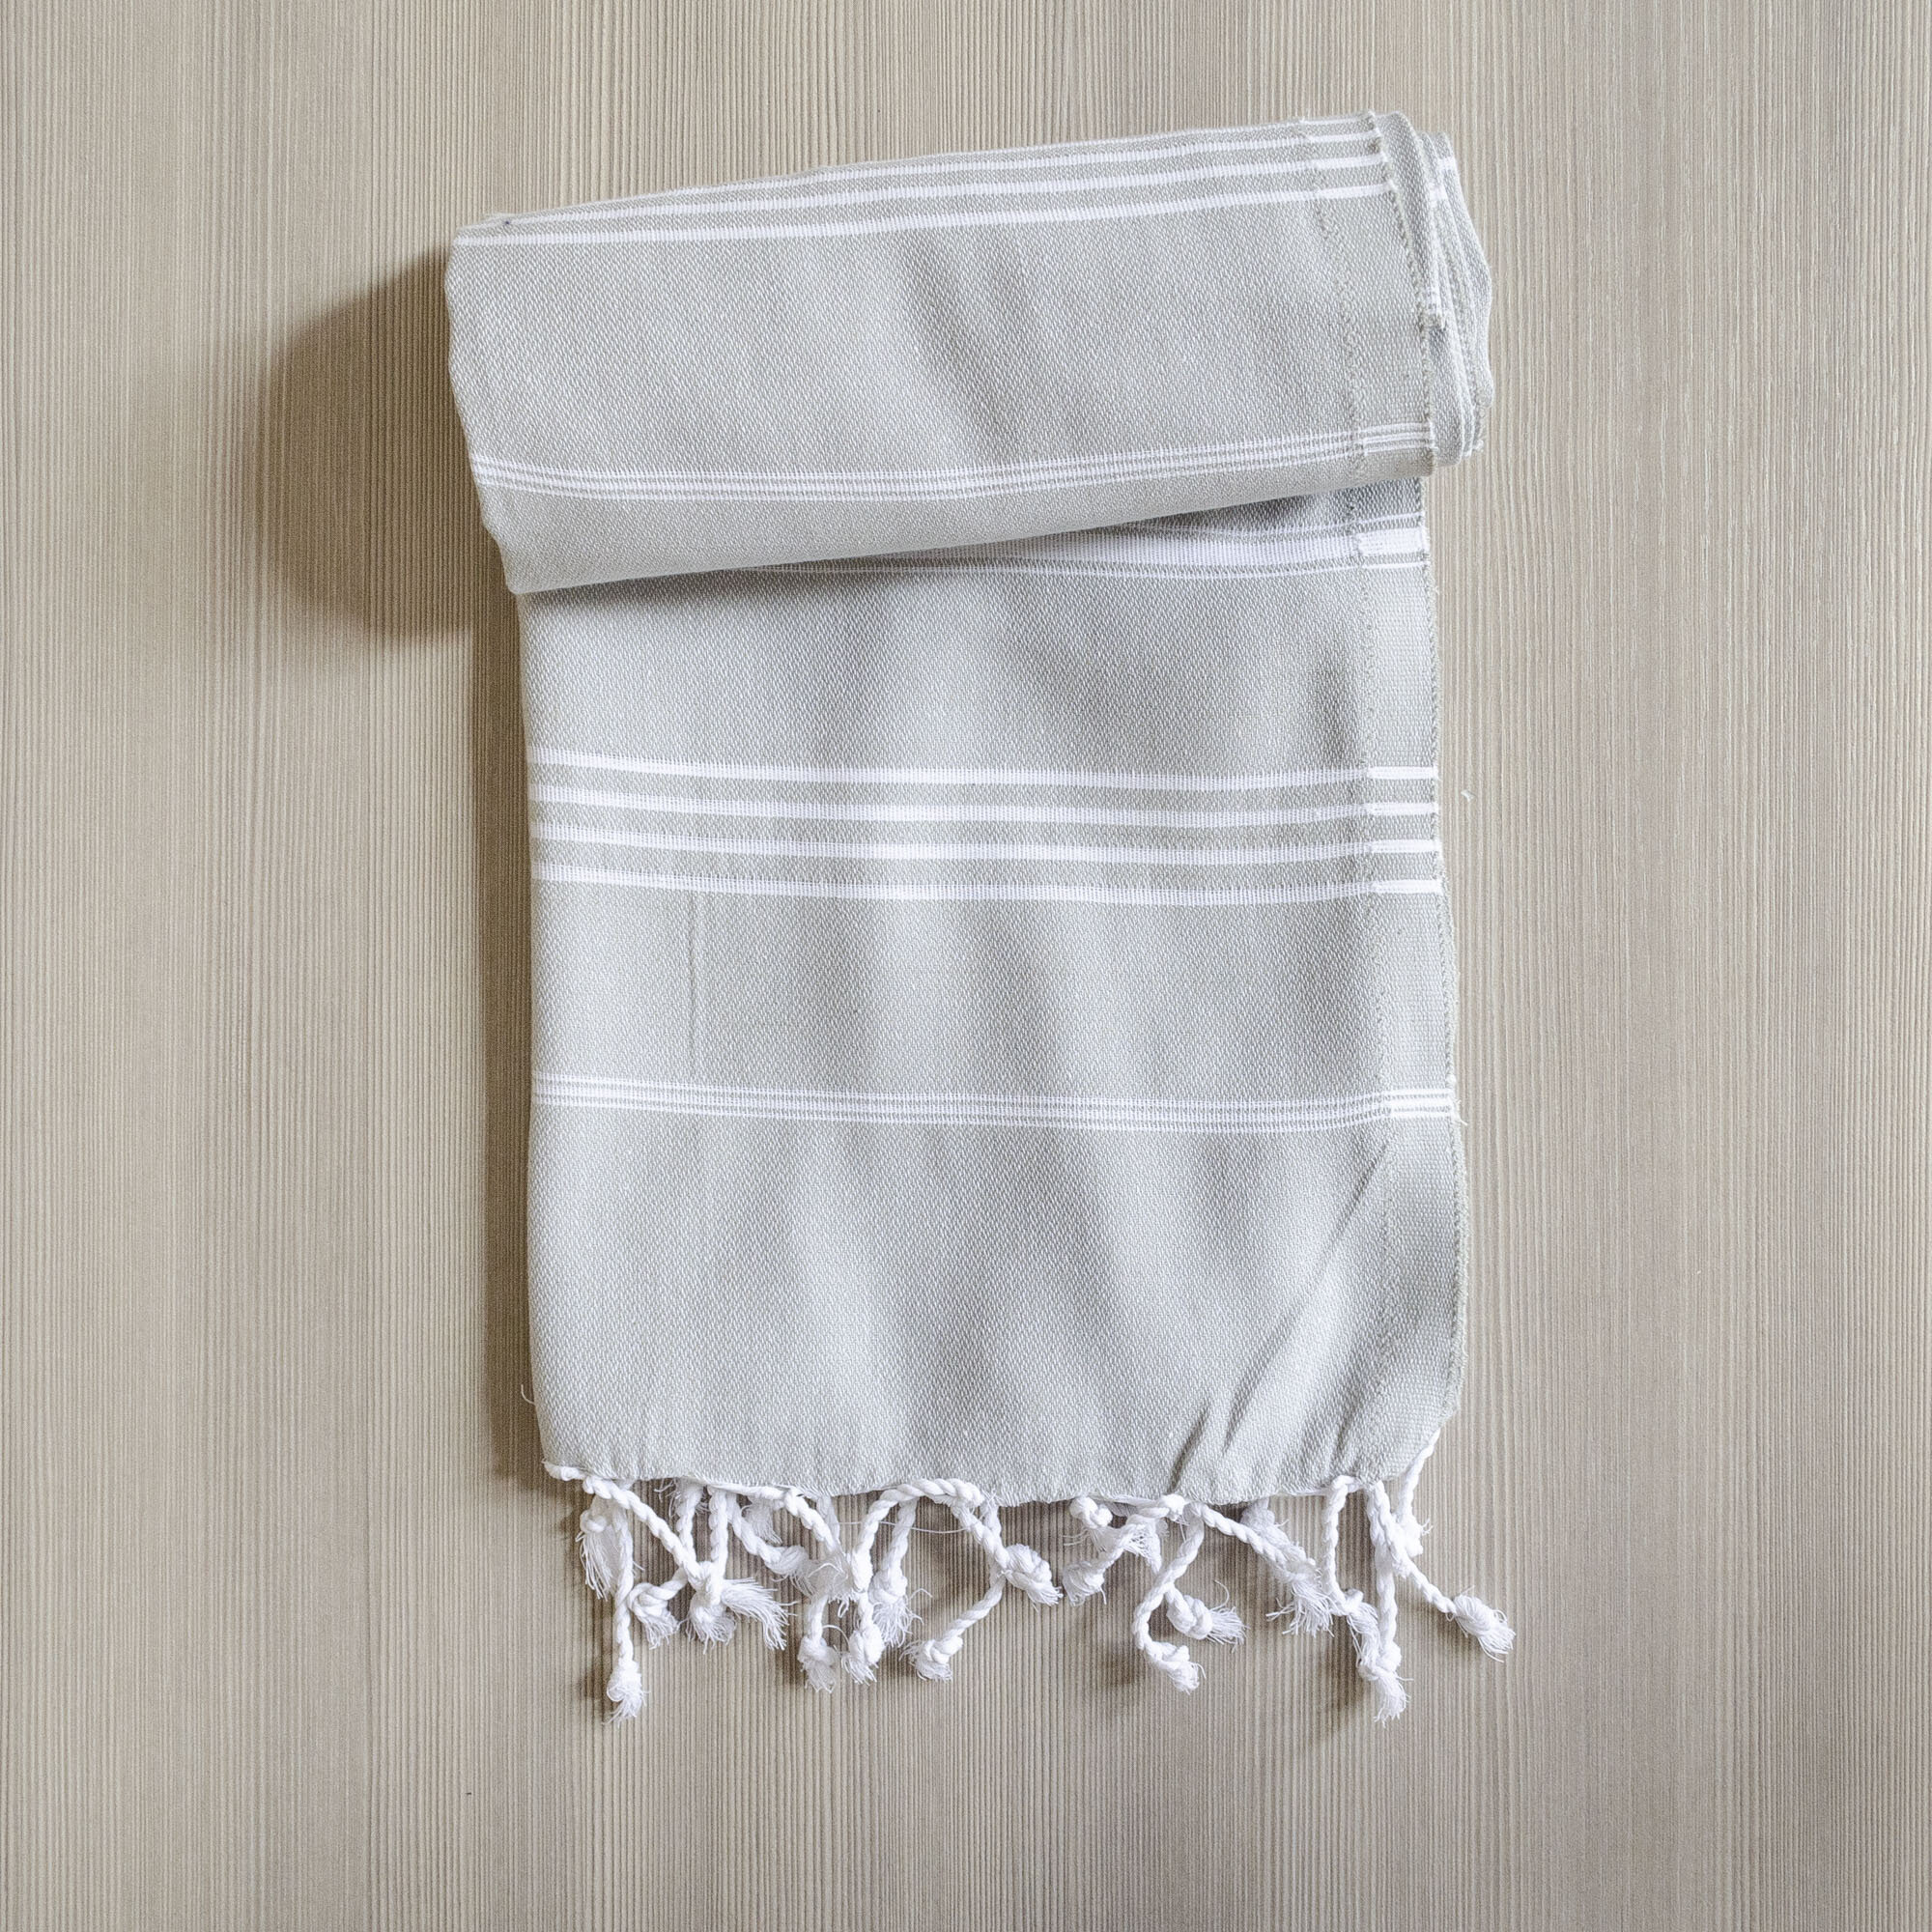 Turkish Towel Multi Color Peshtemal Towel Genuine Hand Loomed In Multi Color For Beach And Bath Home Kitchen Nucleus Bath